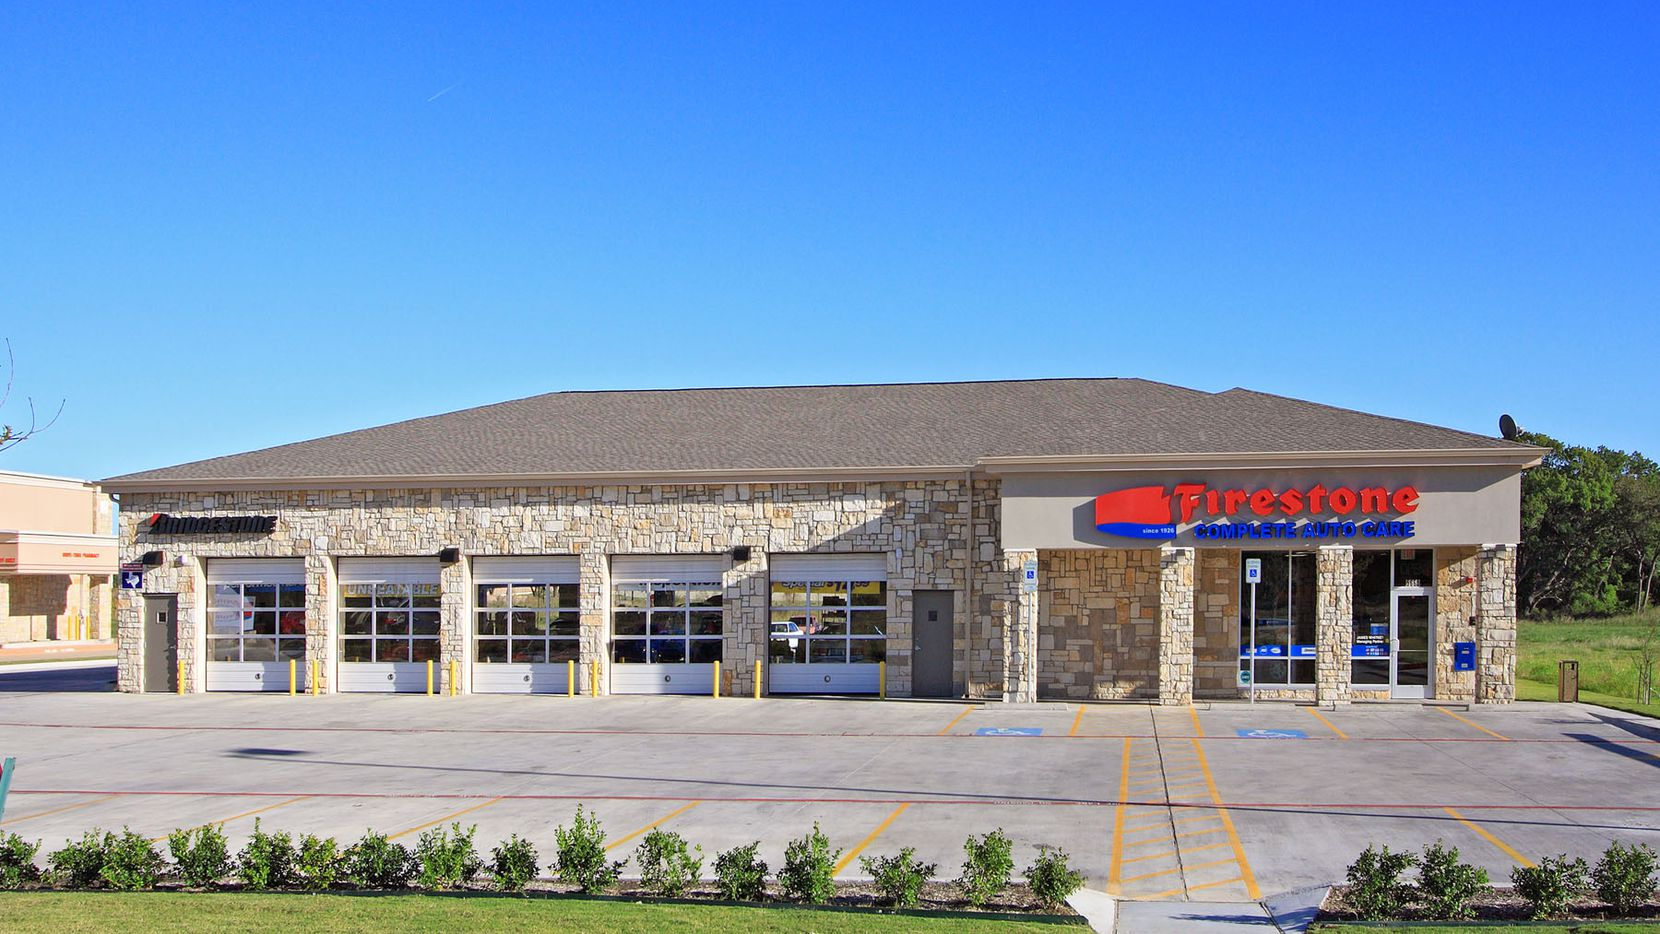 Four Rivers Capital has purchased more than a dozen properties leased to companies including Firestone, CVS Pharmacy, Taco Bueno, McDonald's and other firms.